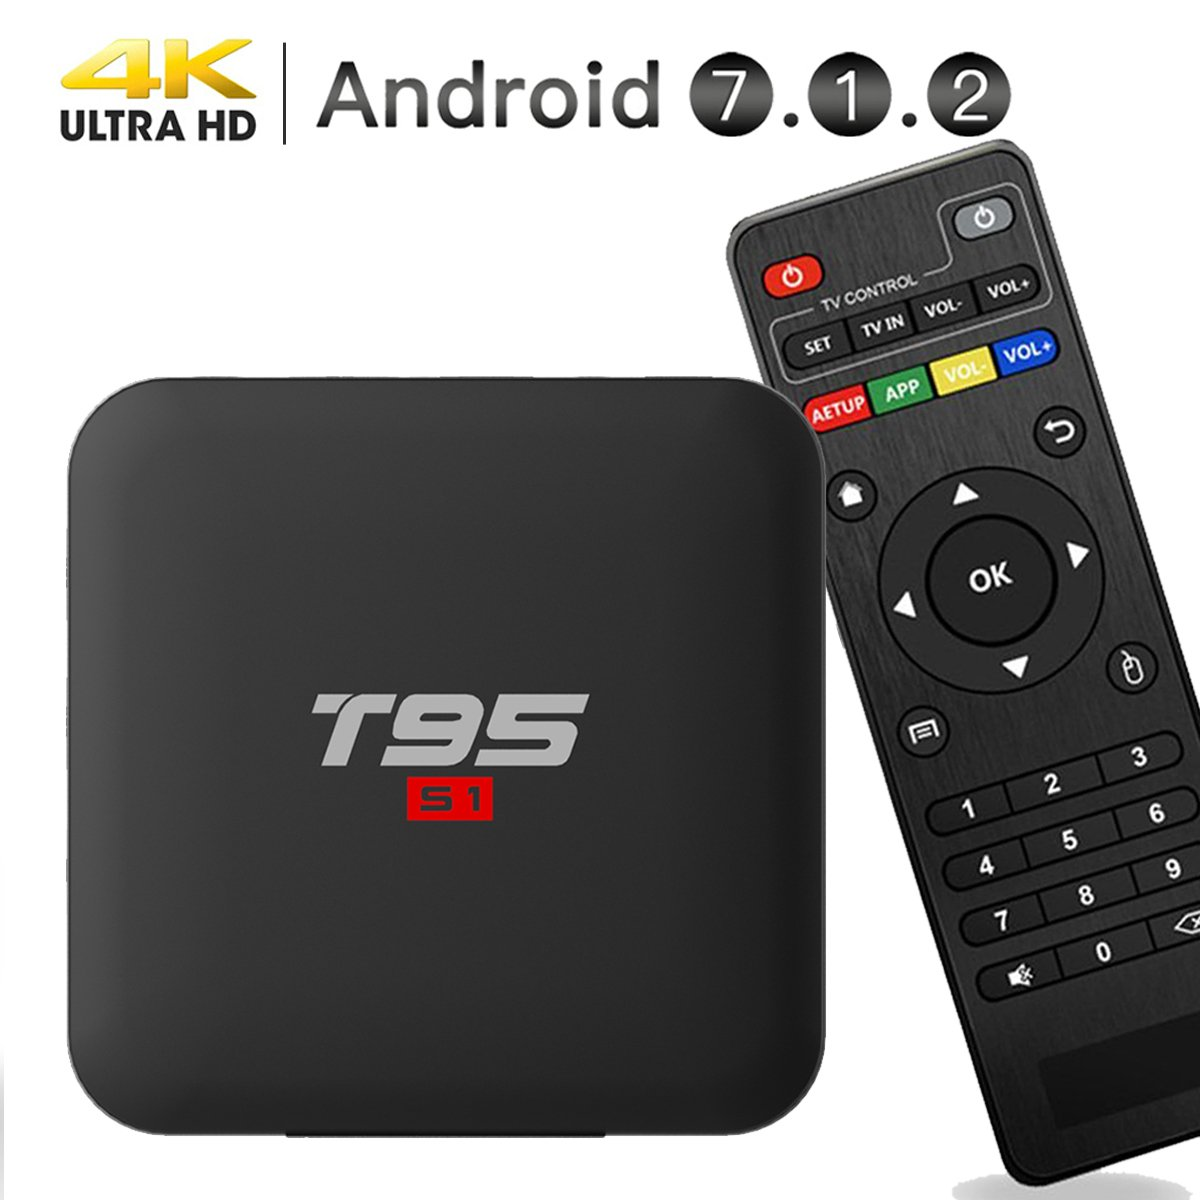 EASYTONE Android 7.1.2 TV Box,2018 Model Smart TV Box Quad-core 64 Bits /1GB+8GB Supporting 4K (60Hz) Full HD/H.265/2.4G WiFi/HD 2.0 T95 Android Box by EASYTONE